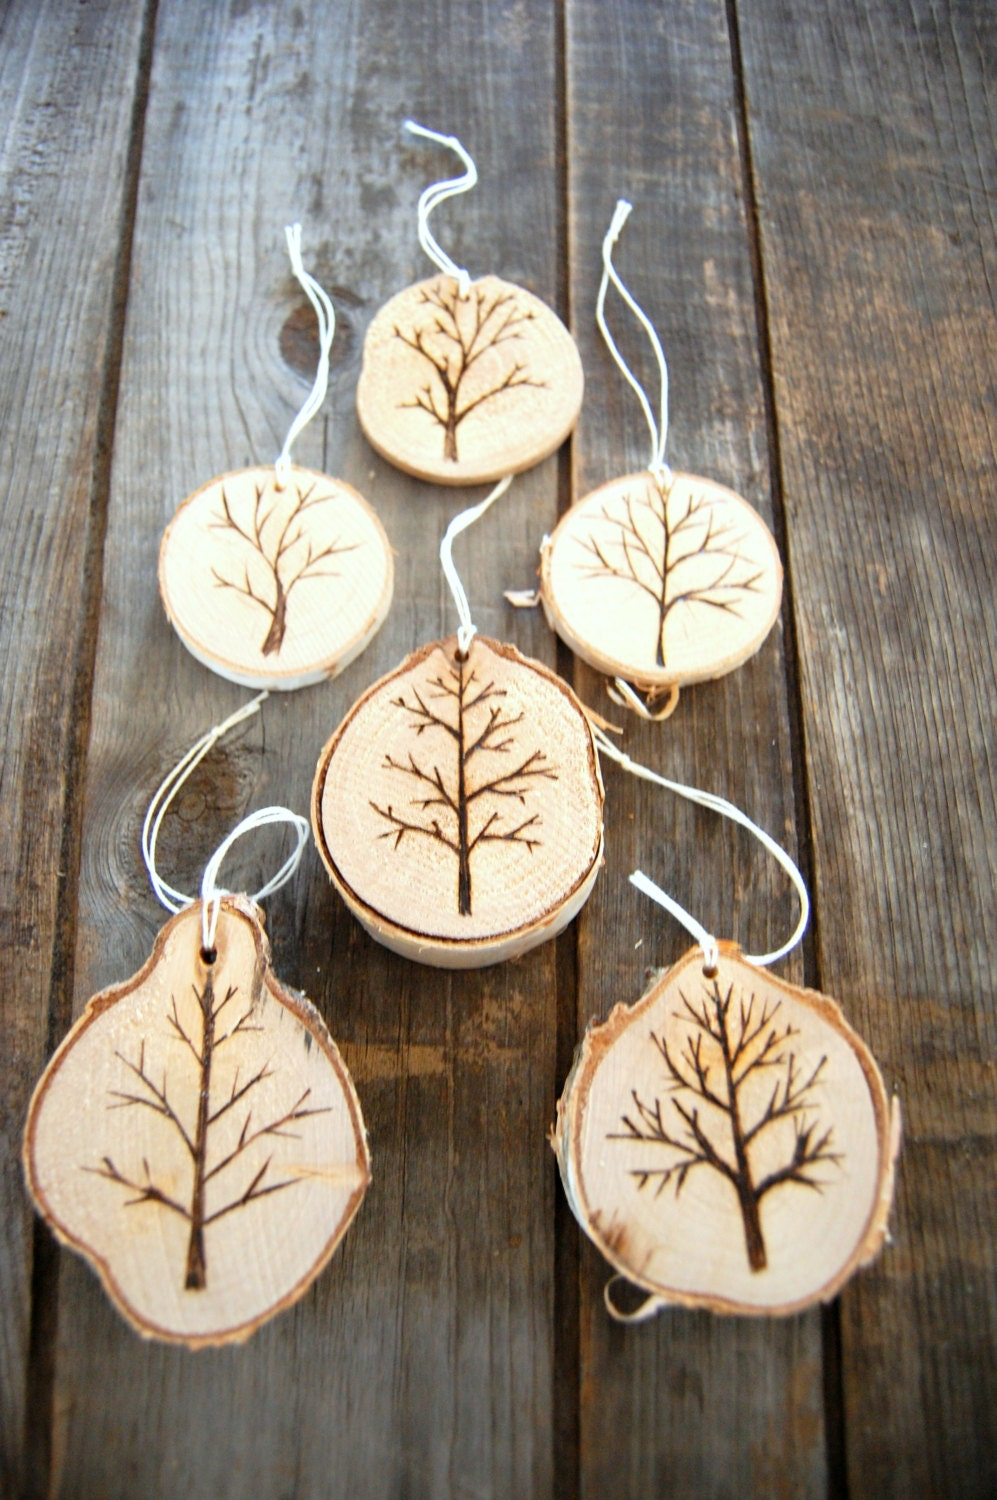 Wood burned christmas tree ornaments bare by reeckerson